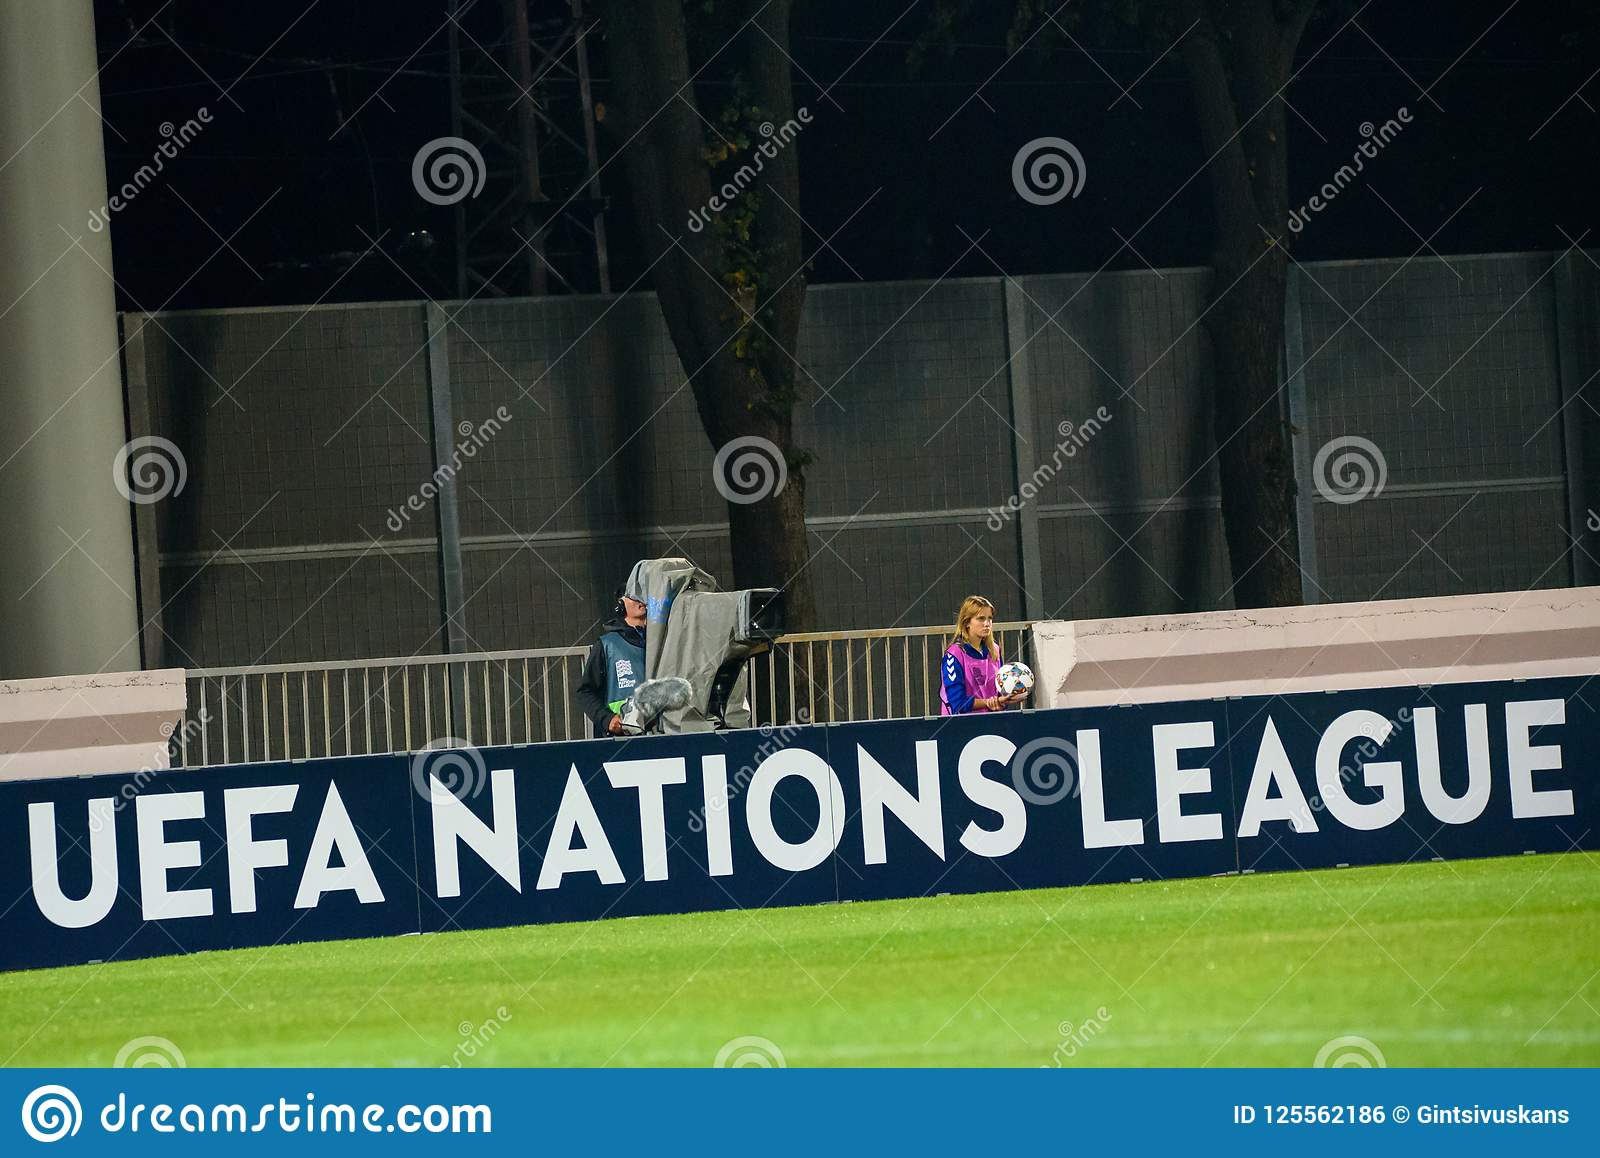 Uefa Nations League Banner At Stadium Editorial Photo Image Of Game Nations 125562186